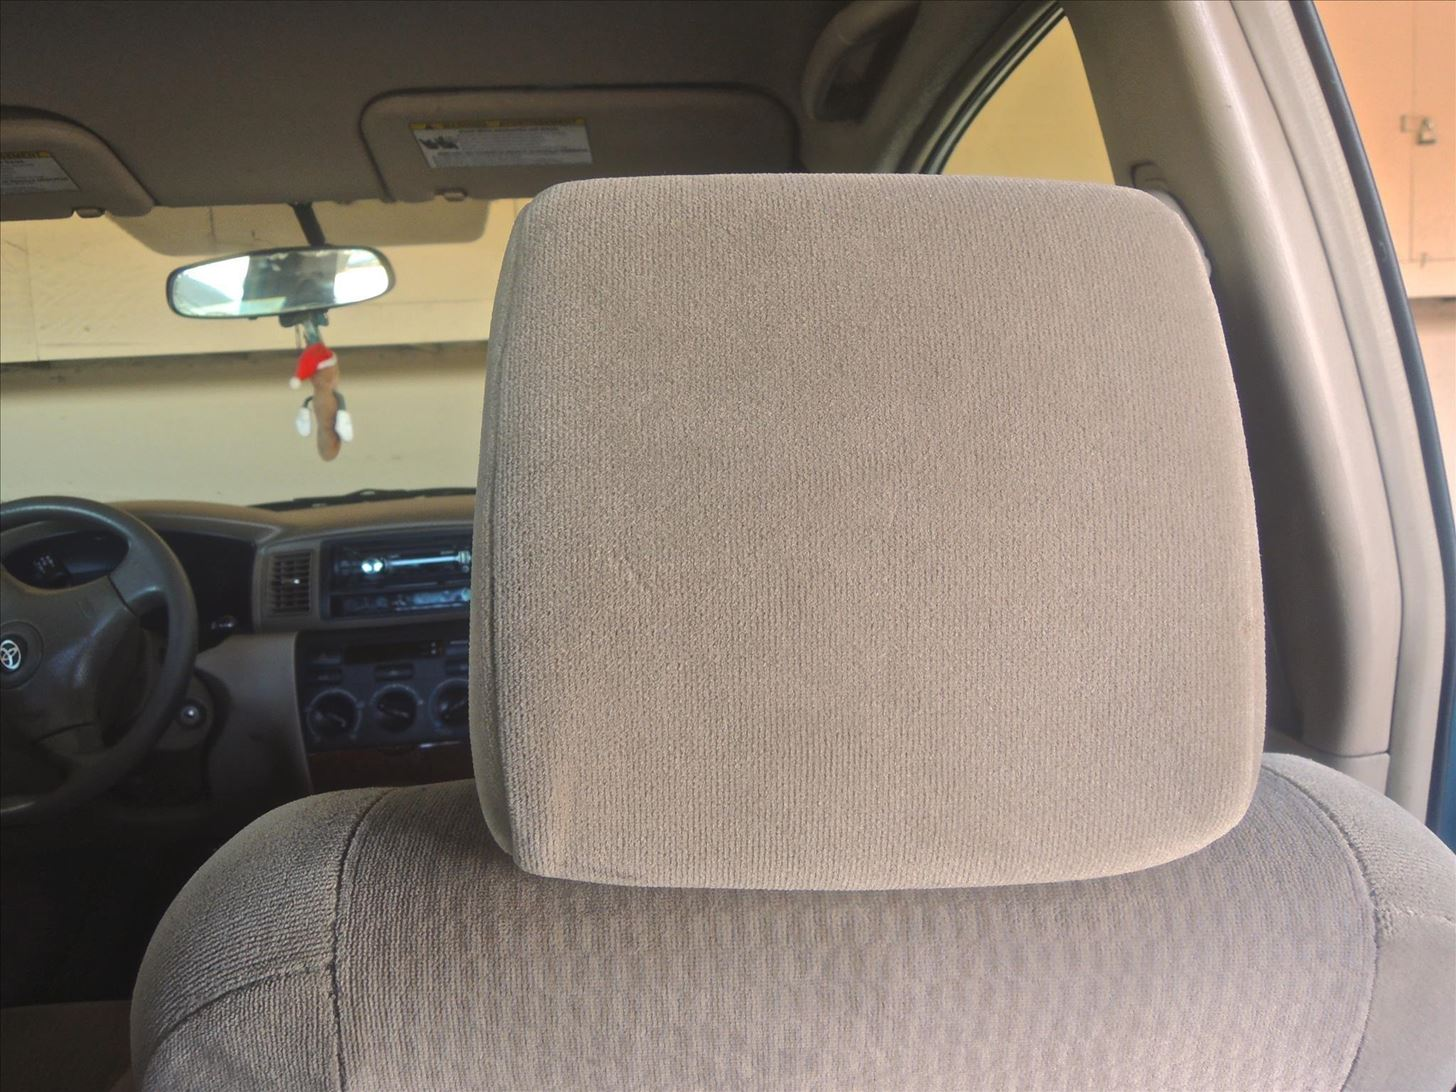 While Not ALL Headrests Are Detachable The Majority Of Them It Makes Seats Easier To Install And Uninstall By Factory Allows Many